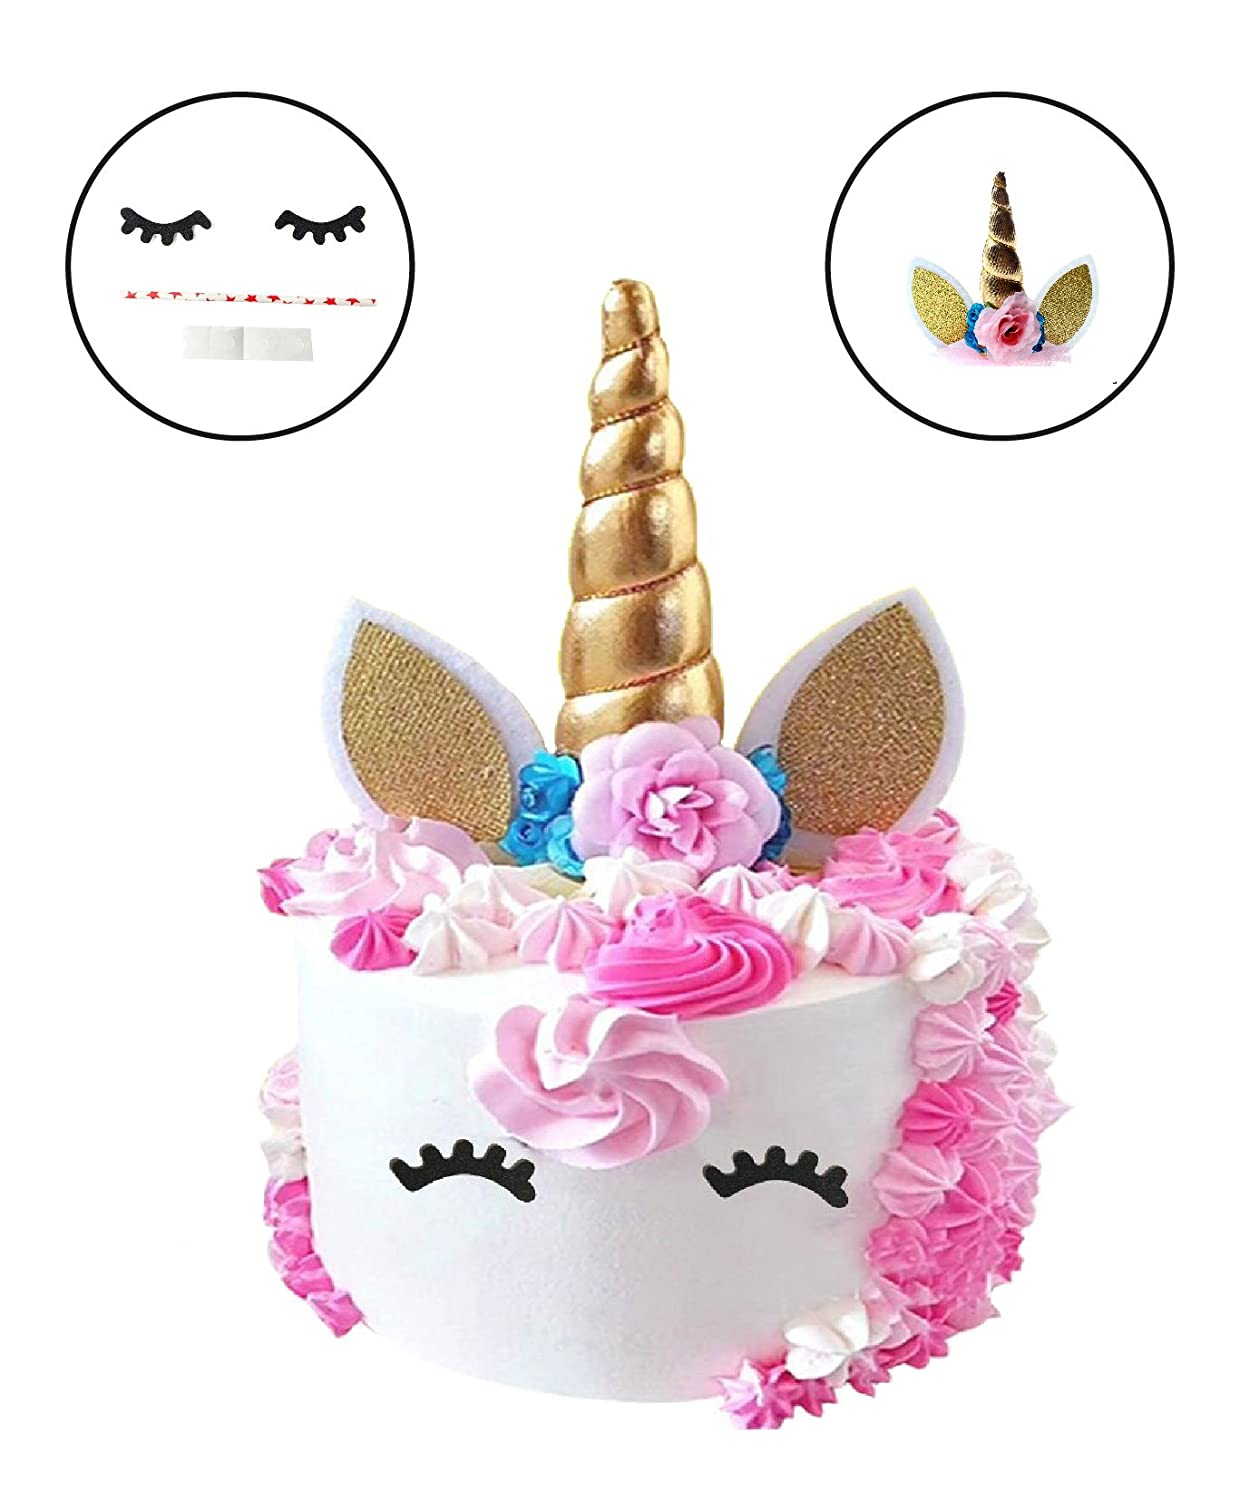 Unicorn Cake Toppers – Shimmering Unicorn Horn Ears for Party Cakes – Flowers Cake Décor and Unicorn Toppers – Baby shower, Wedding – Cake Accessories – Handcrafted Unicorn Toppers